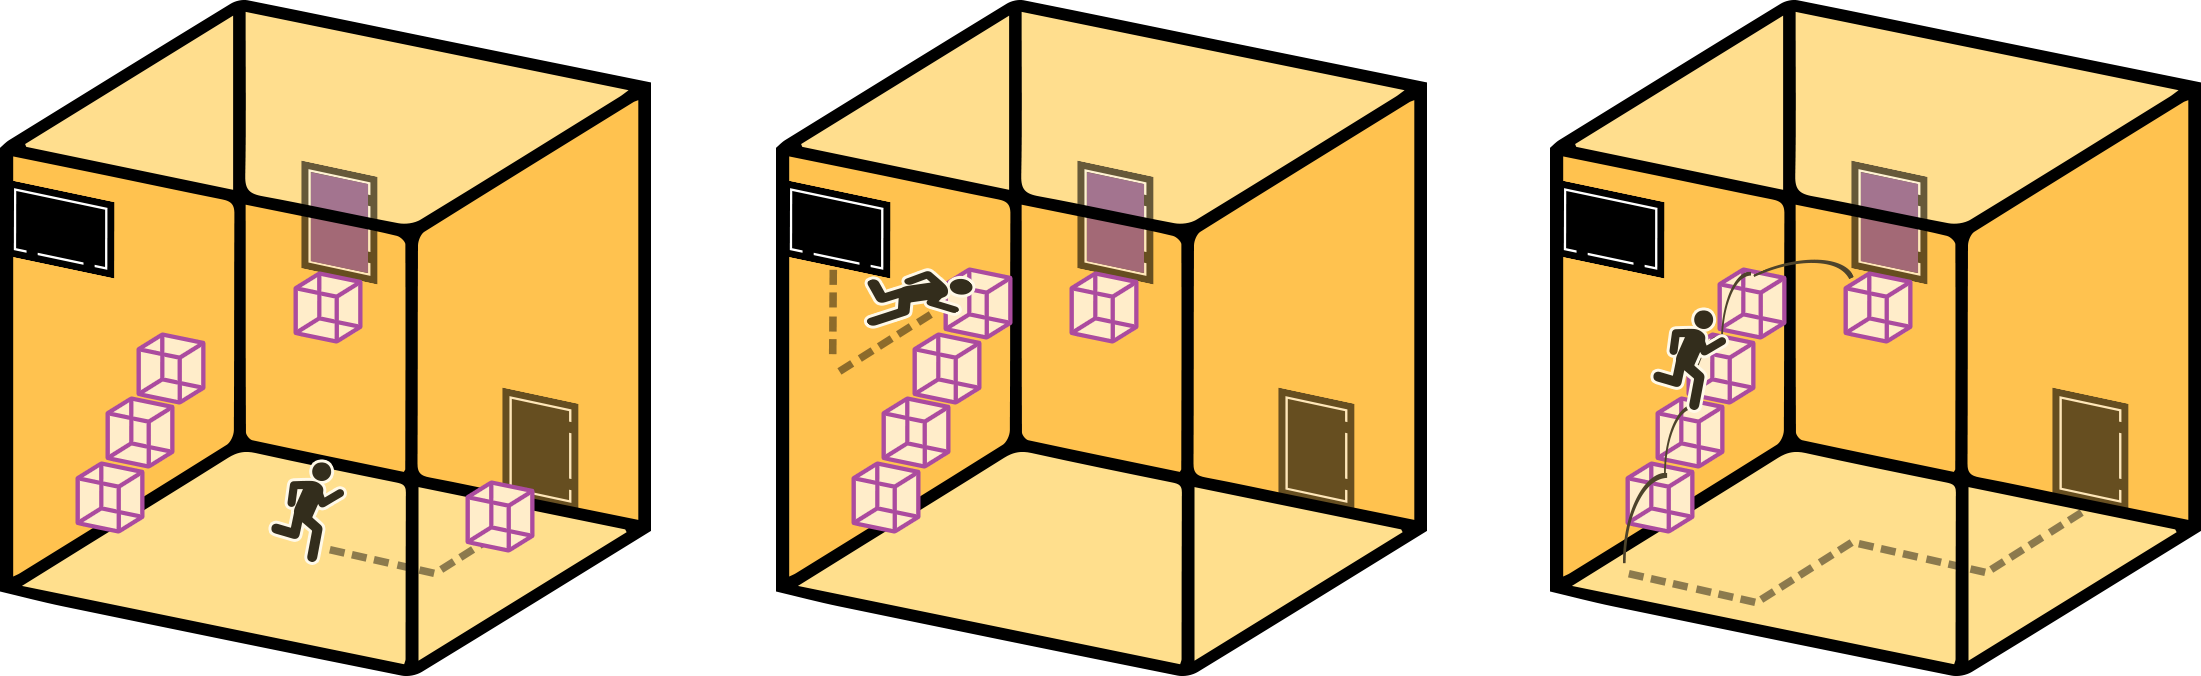 A conceptual illustration of a movable cube mechanic. The player can carry cubes through portal doors, changing their gravitational orientations and allowing the player to use them as a staircase.